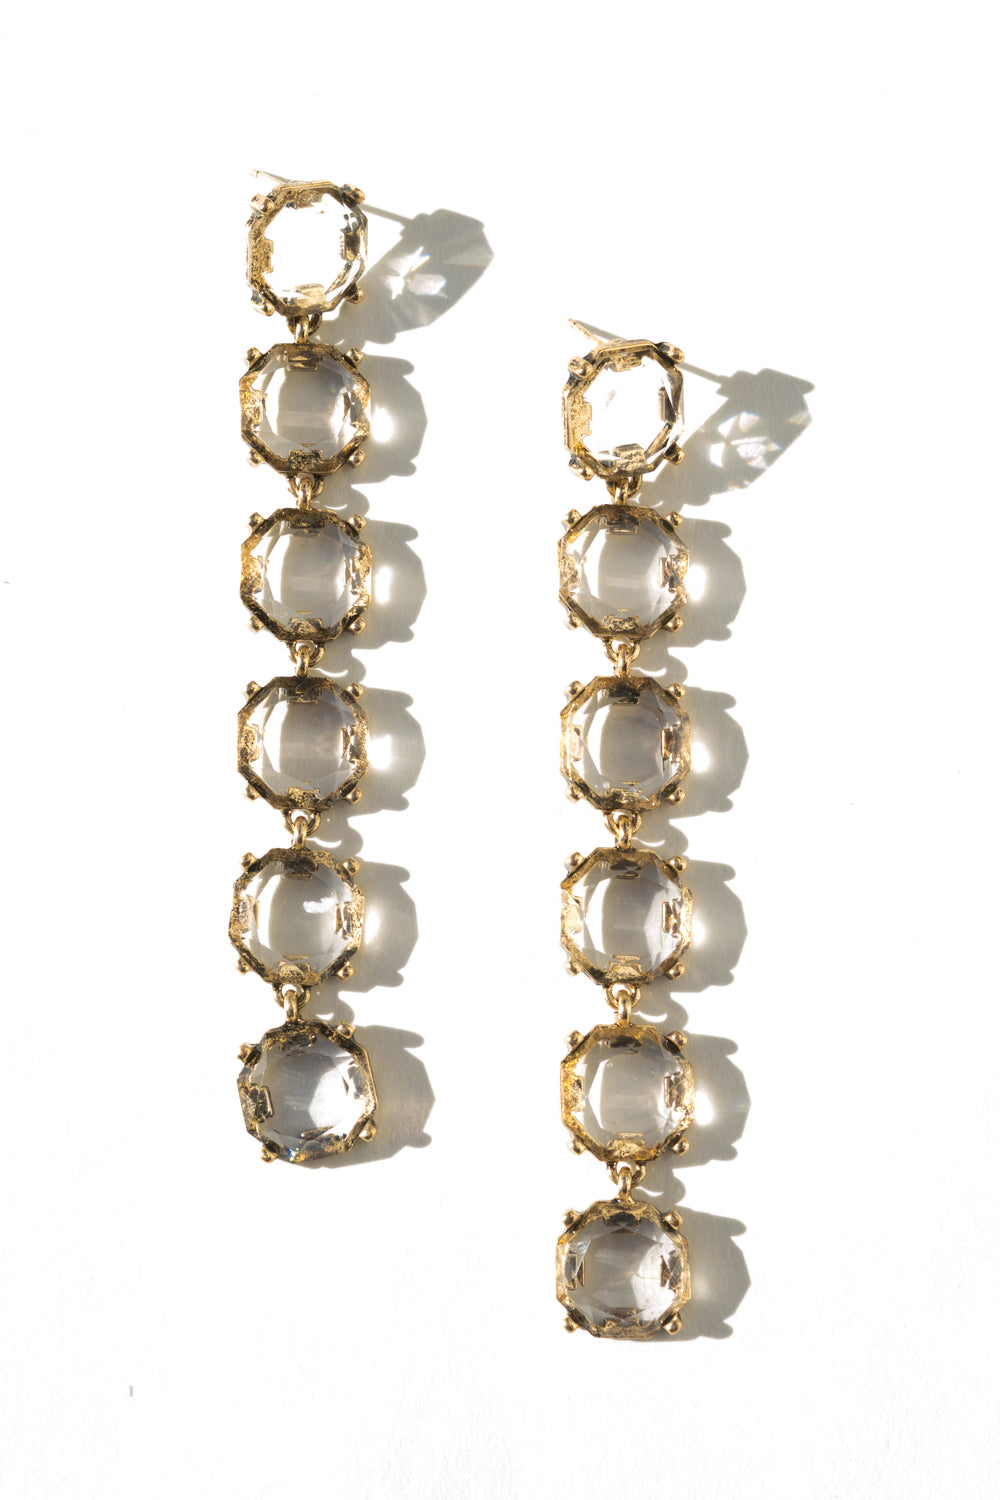 Xandie | Crystal Shoulder Duster Earrings | 18K Antique Gold Plating | Janna Conner